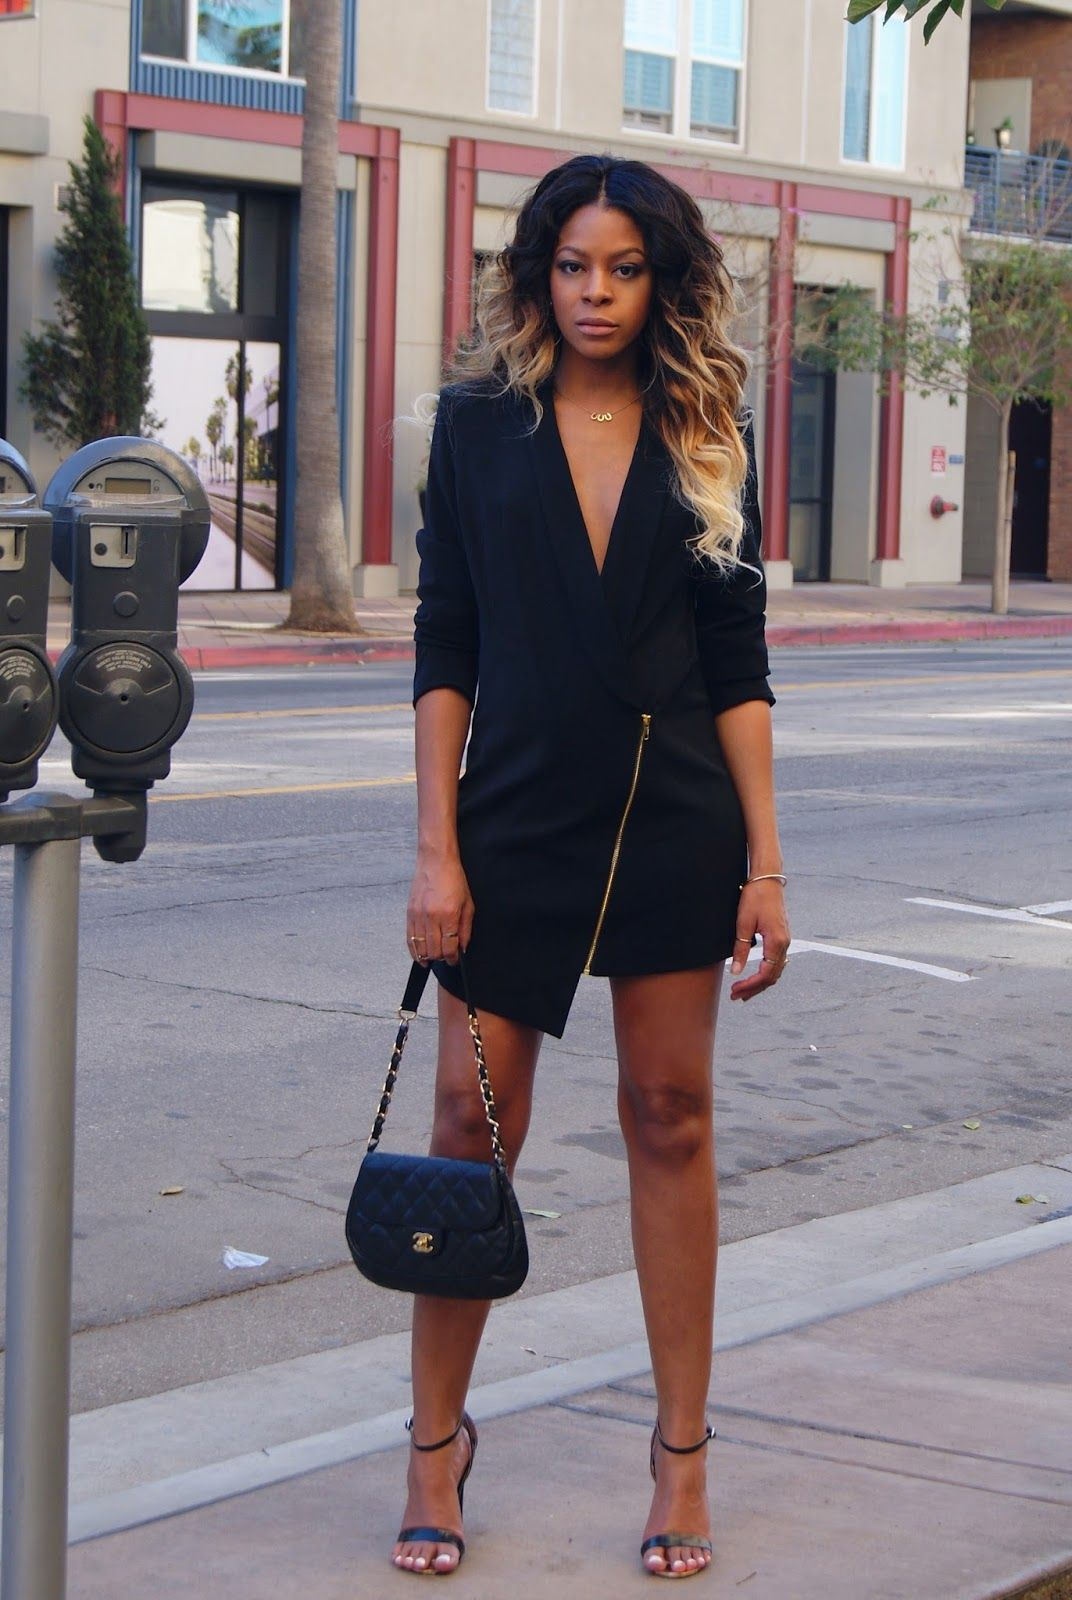 c0aafbfaf0e3 how to wear a blazer dress | That Blogin' Life | Fashion, Blazer ...